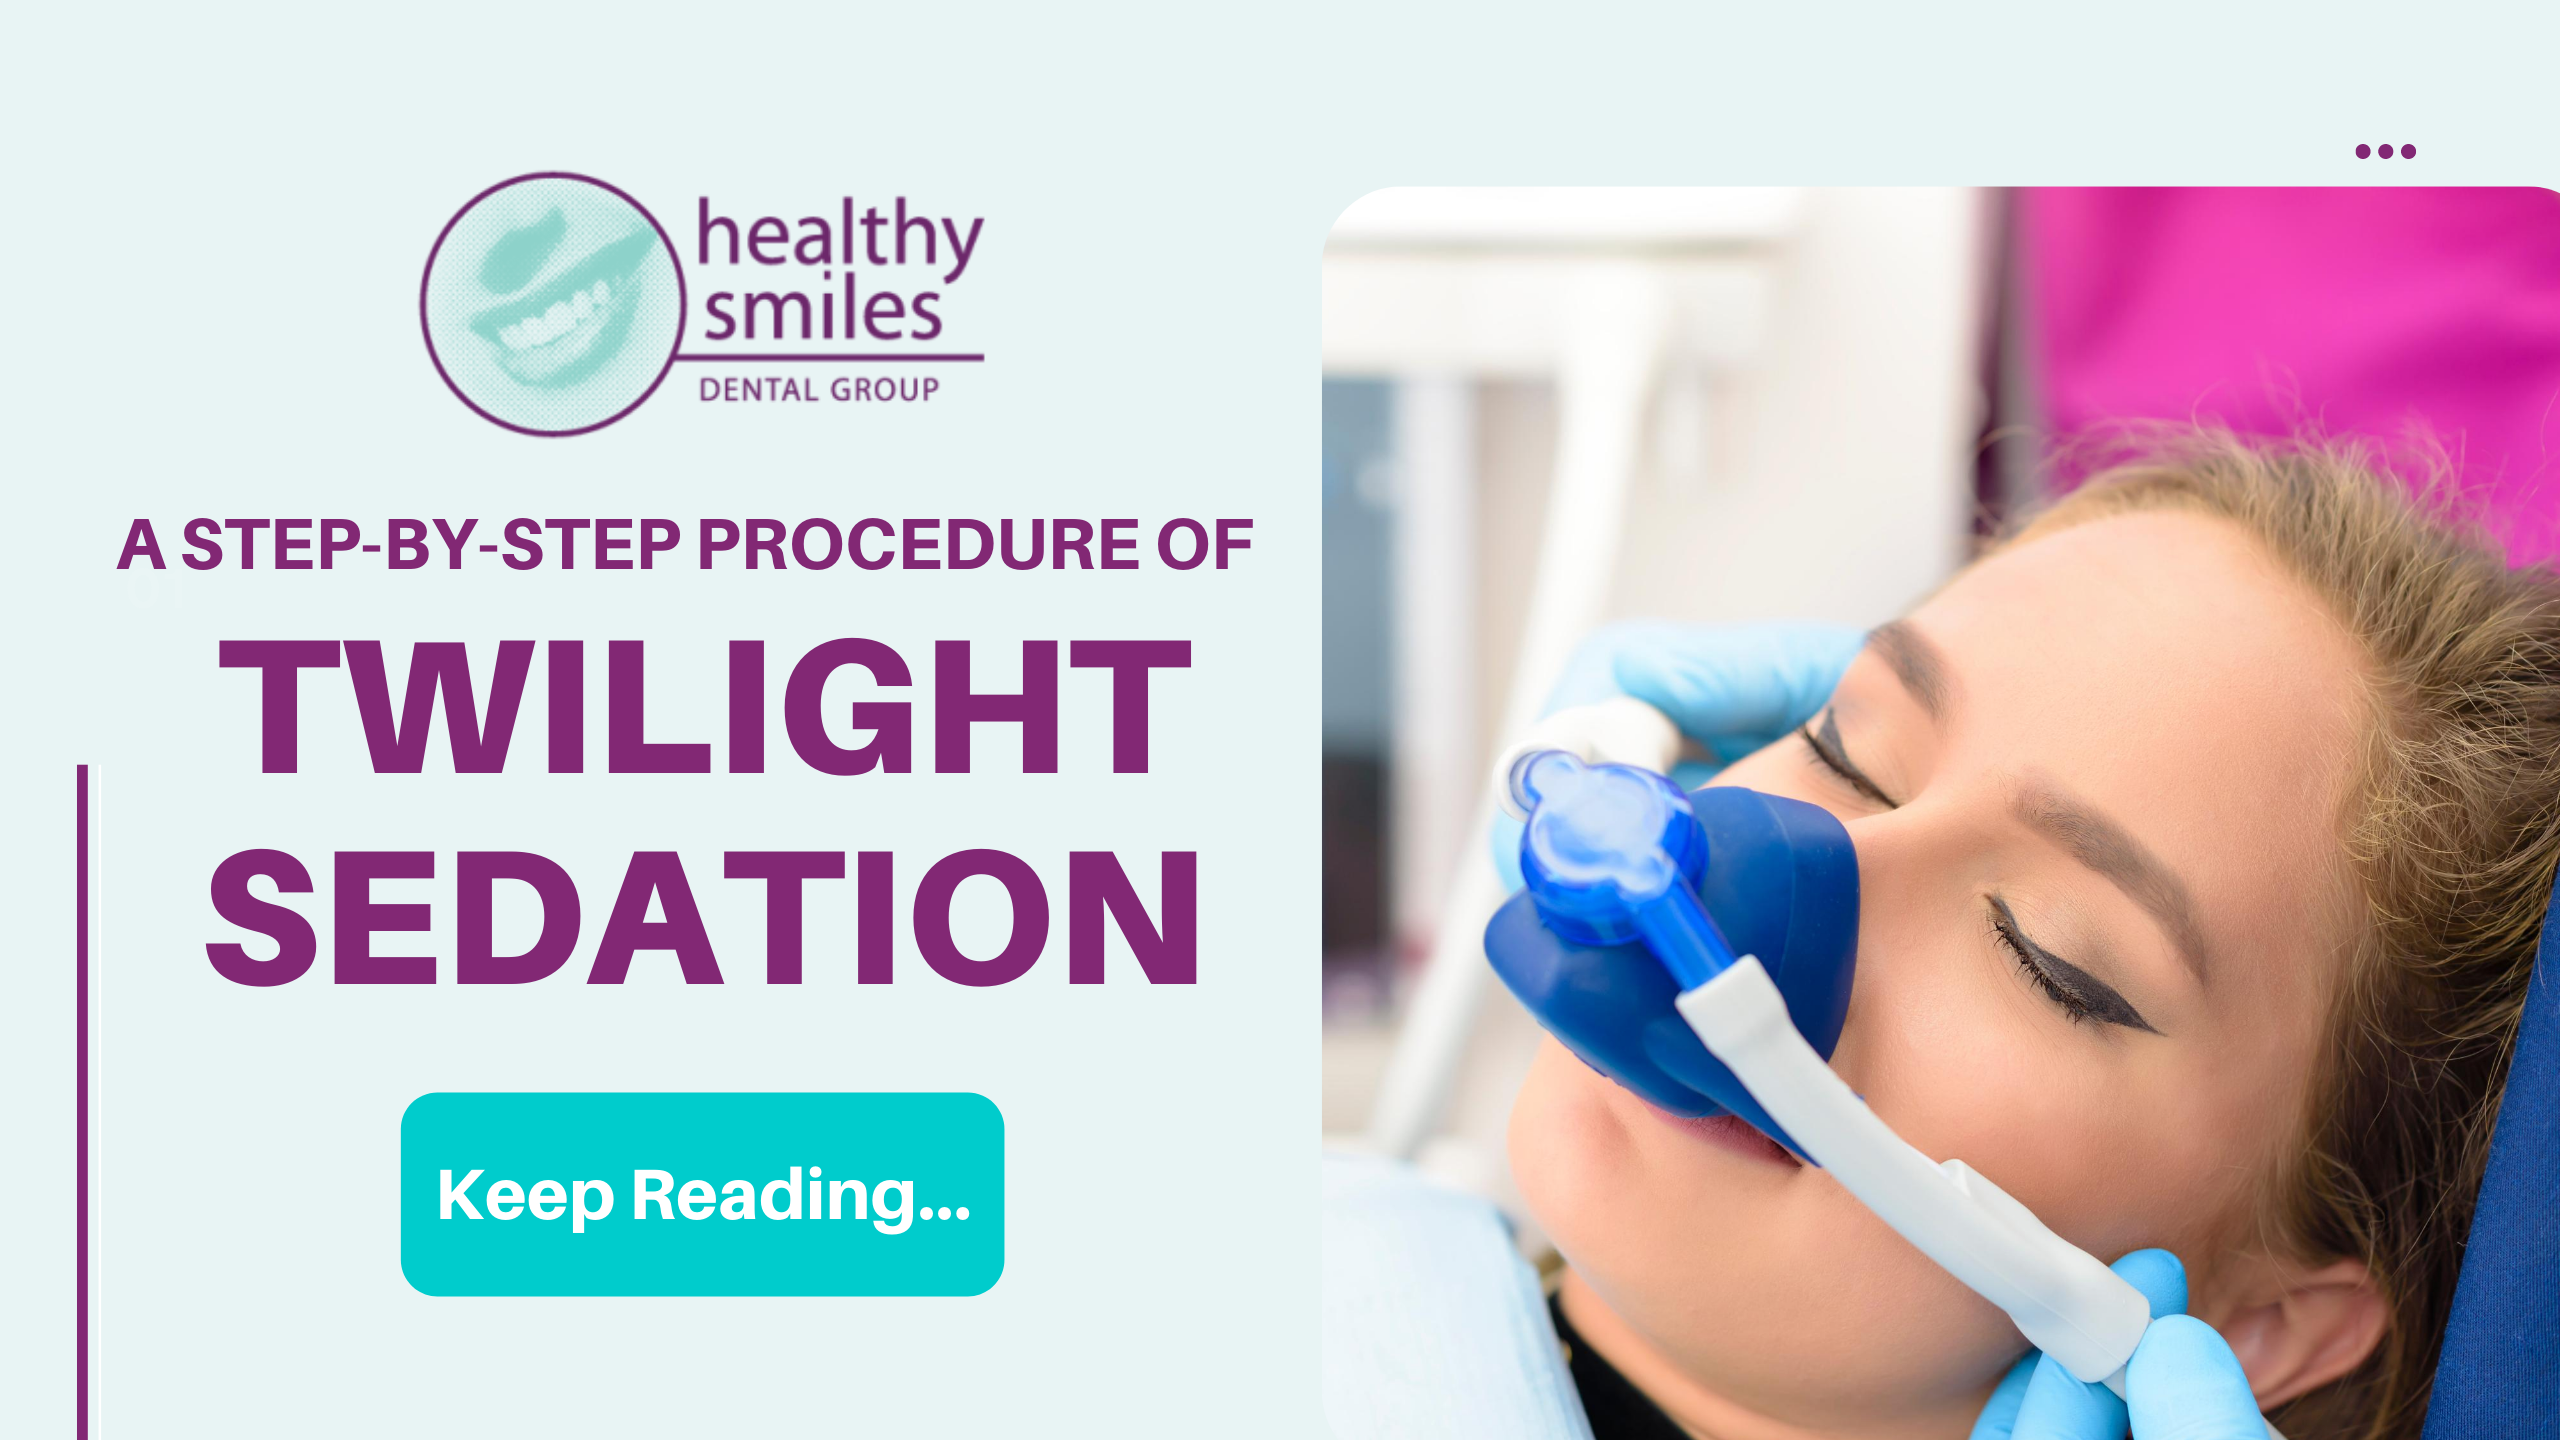 What is the Process of Twilight Sedation?